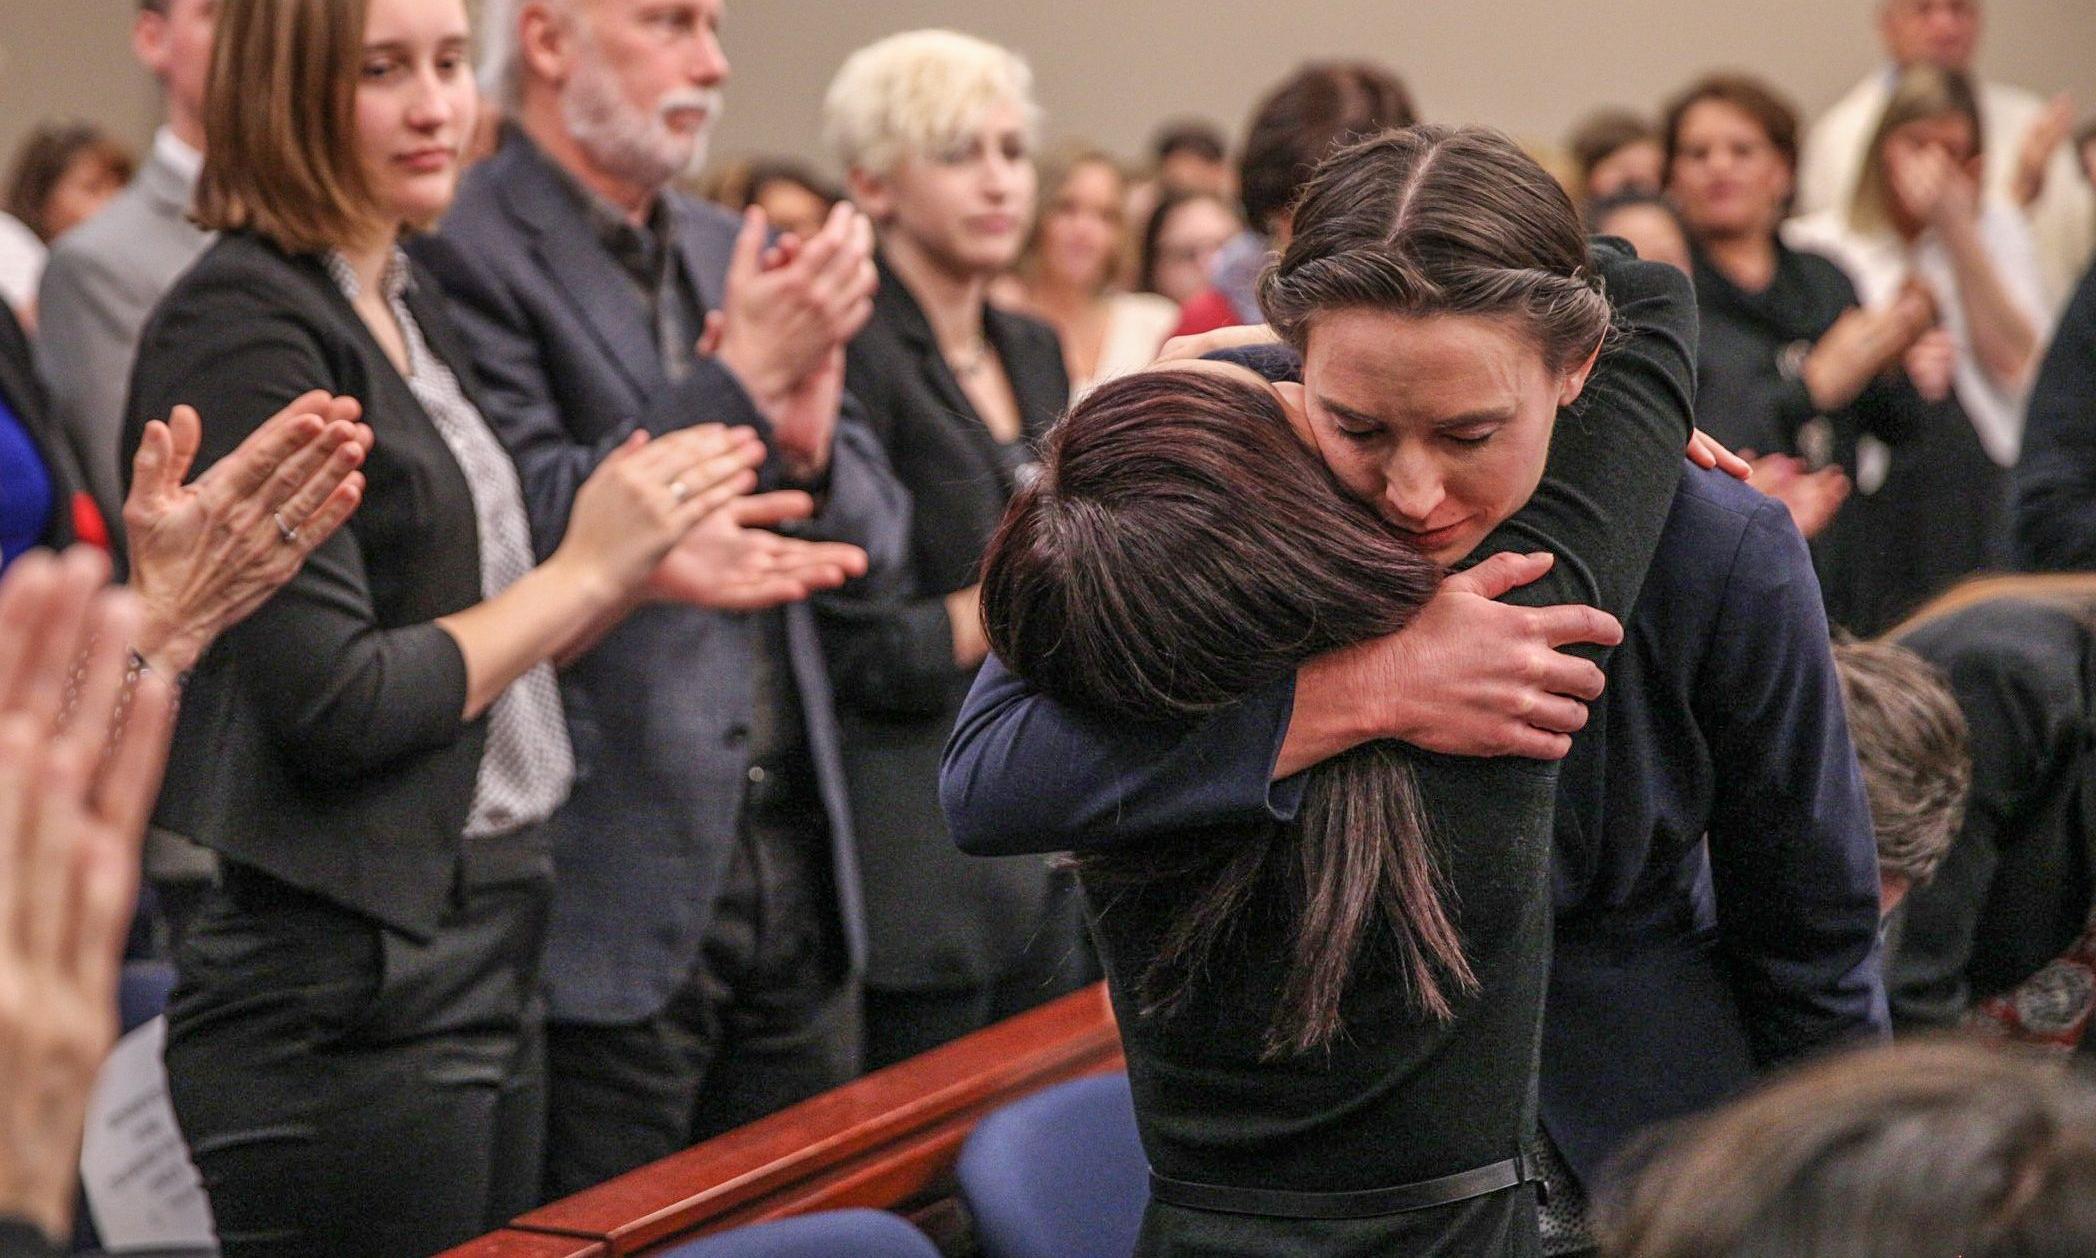 I was abused by Larry Nassar. I had to admit the damage and face it